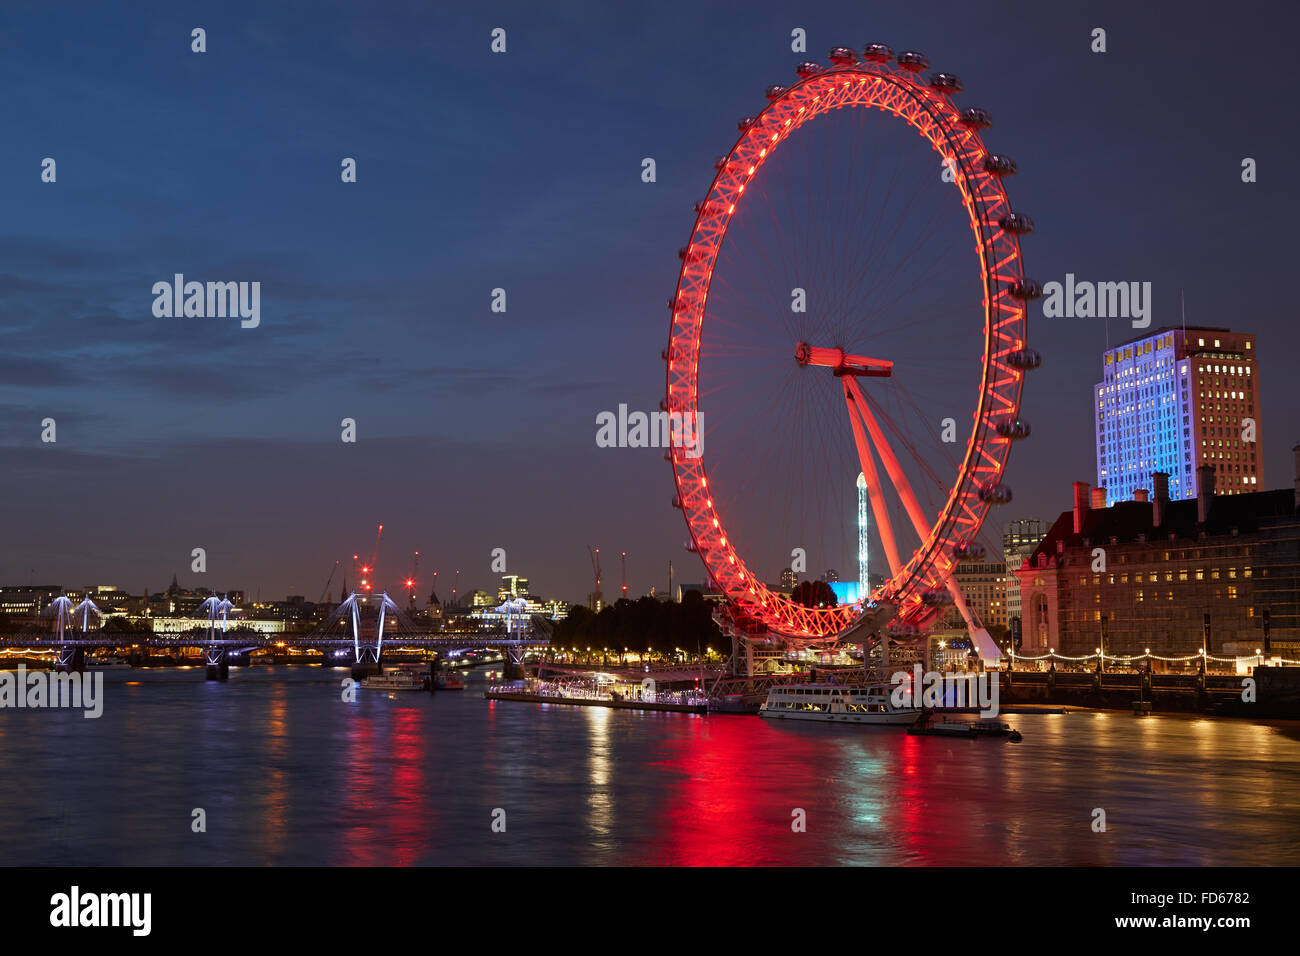 London eye, ferris wheel, illuminated in red and Thames river view in the night - Stock Image